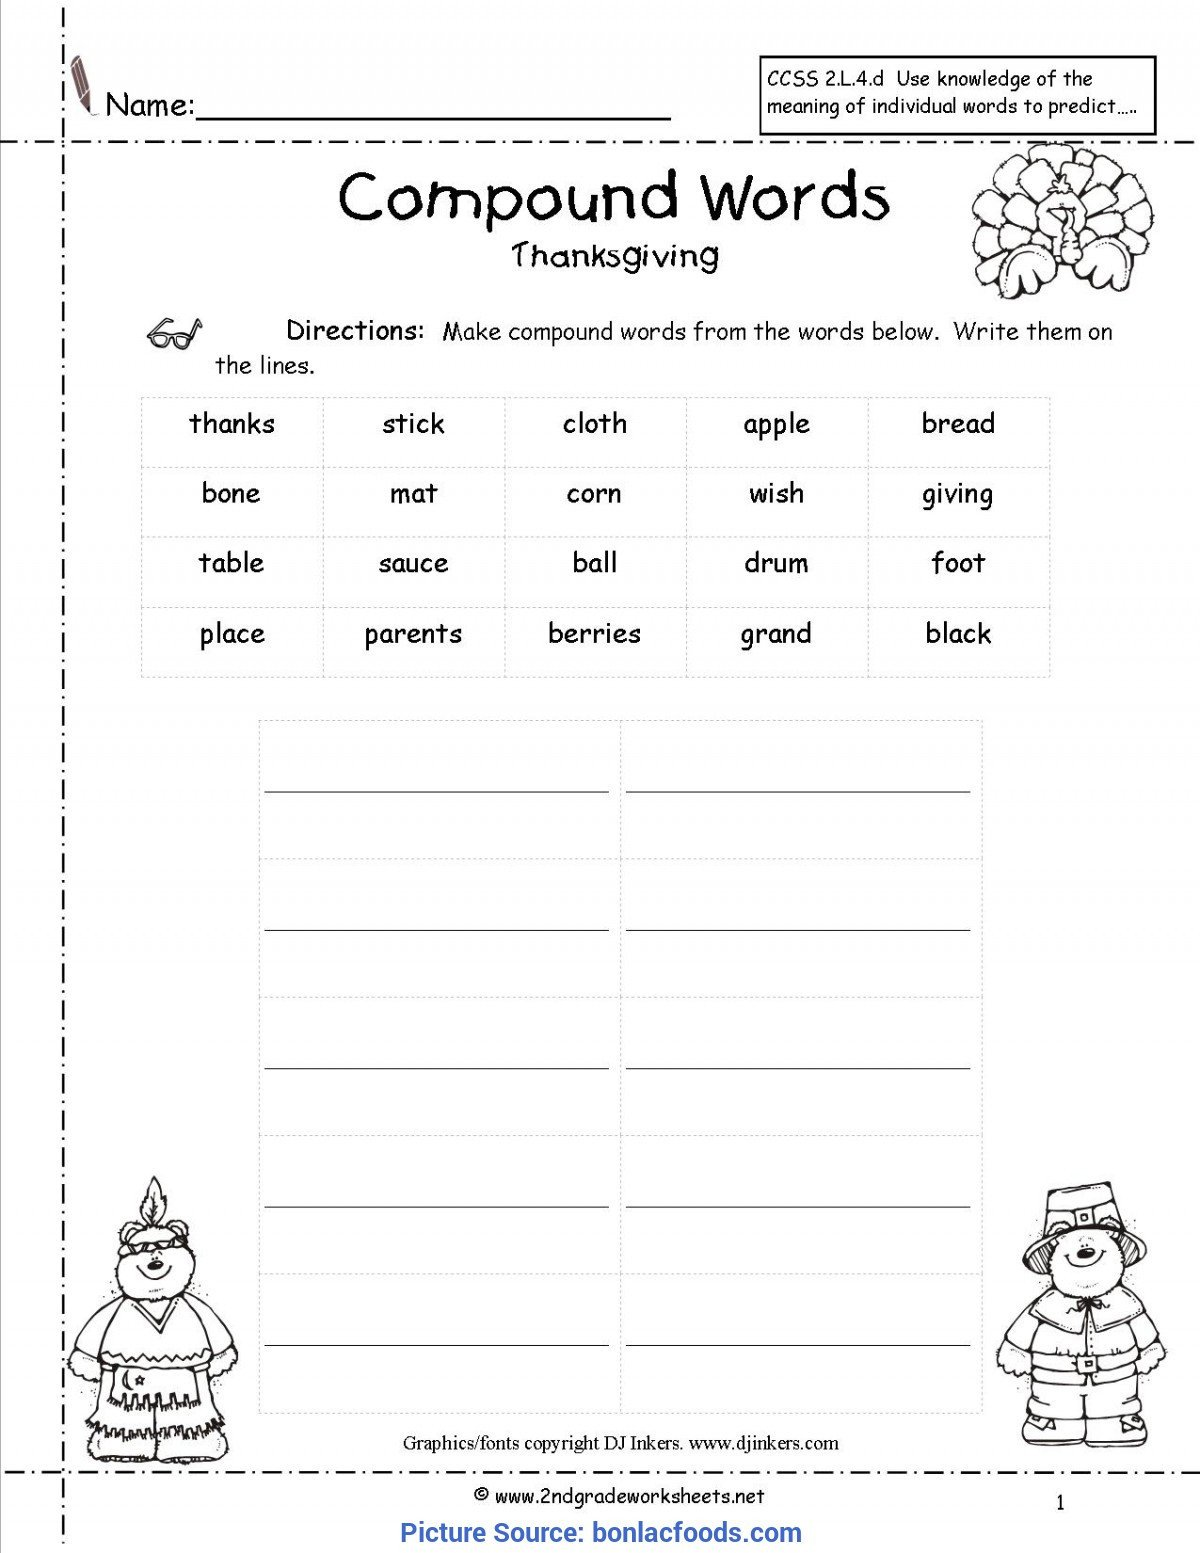 plex 2nd grade lesson plans for pound words worksheets for all and share worksheets free o